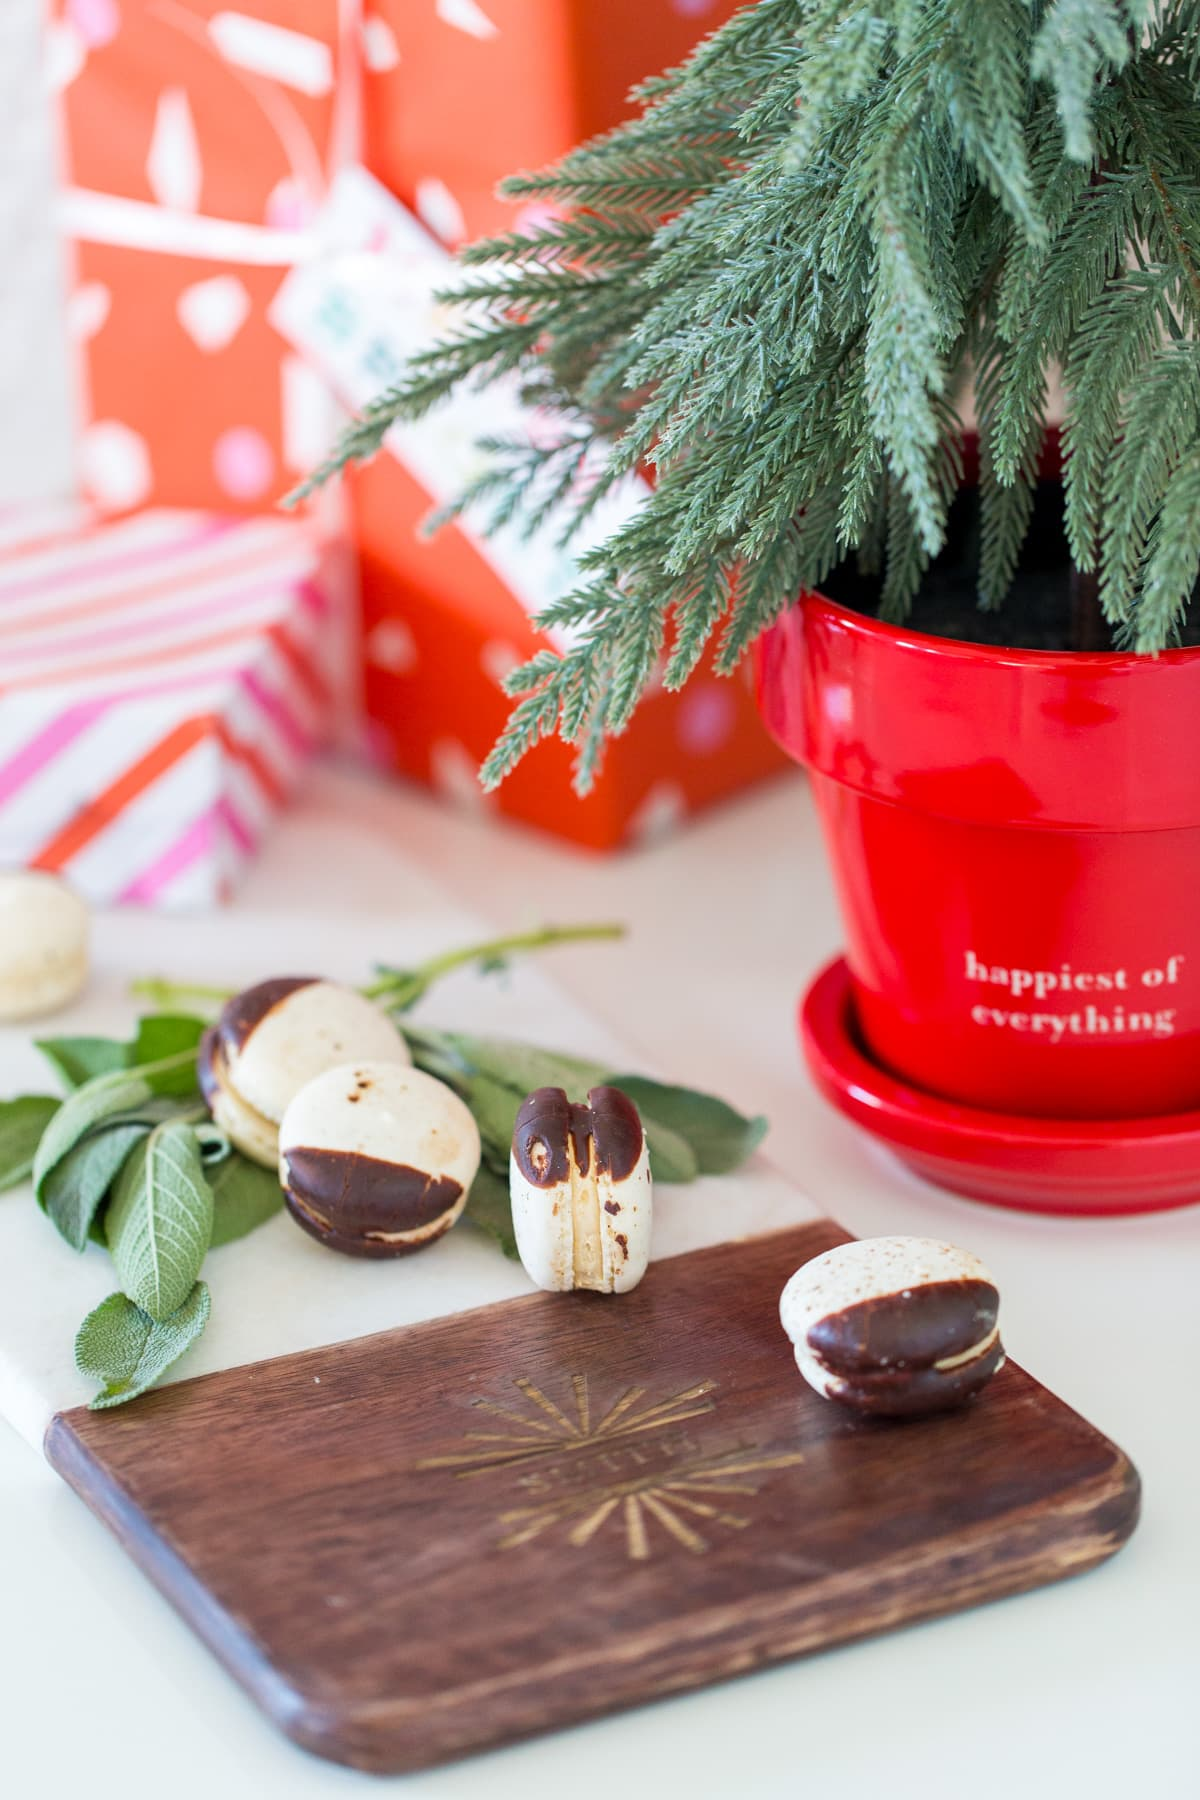 14 Personalized Home Decor & Entertaining Gifts Items For the Holidays by top Houston lifestyle blogger Ashley Rose of Sugar & Cloth